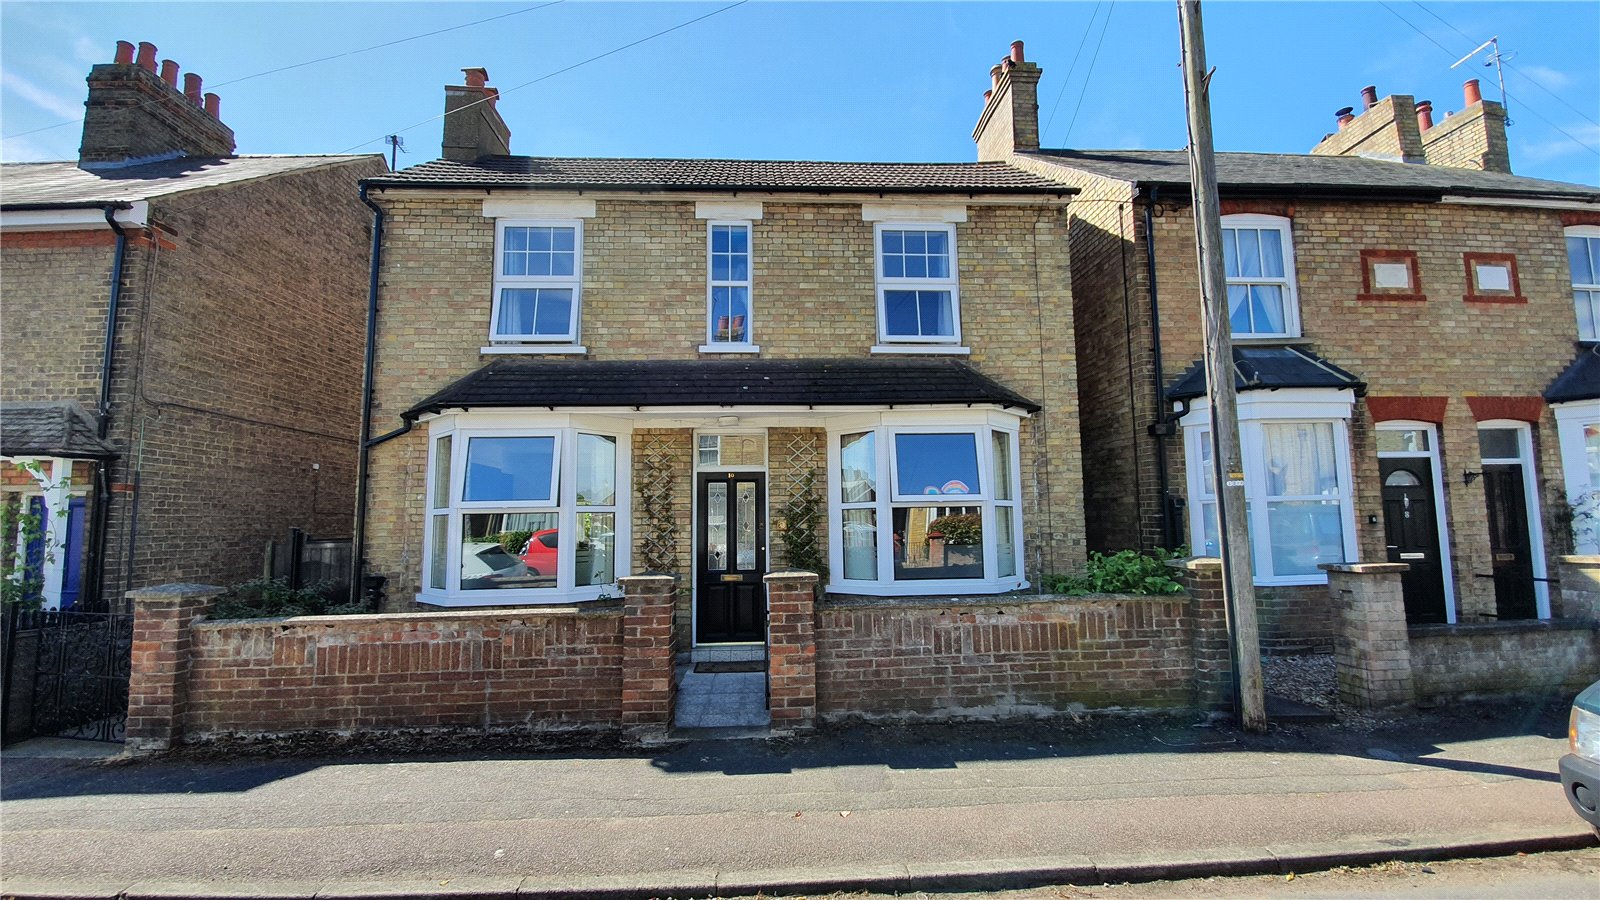 3 bed house for sale in St. Neots, PE19